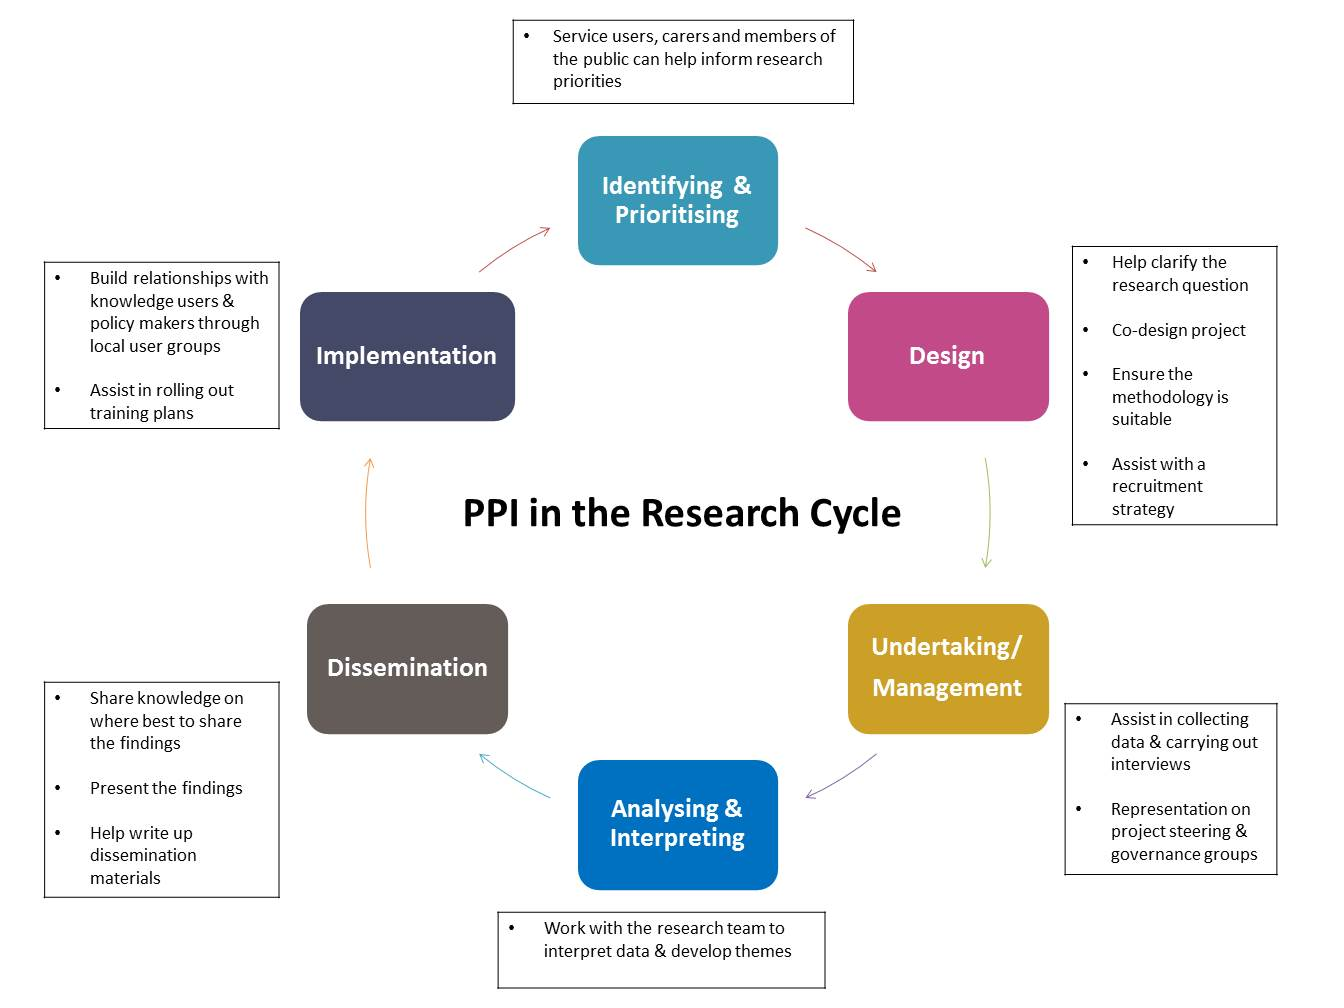 PPI in the research cycle image with examples of PPI